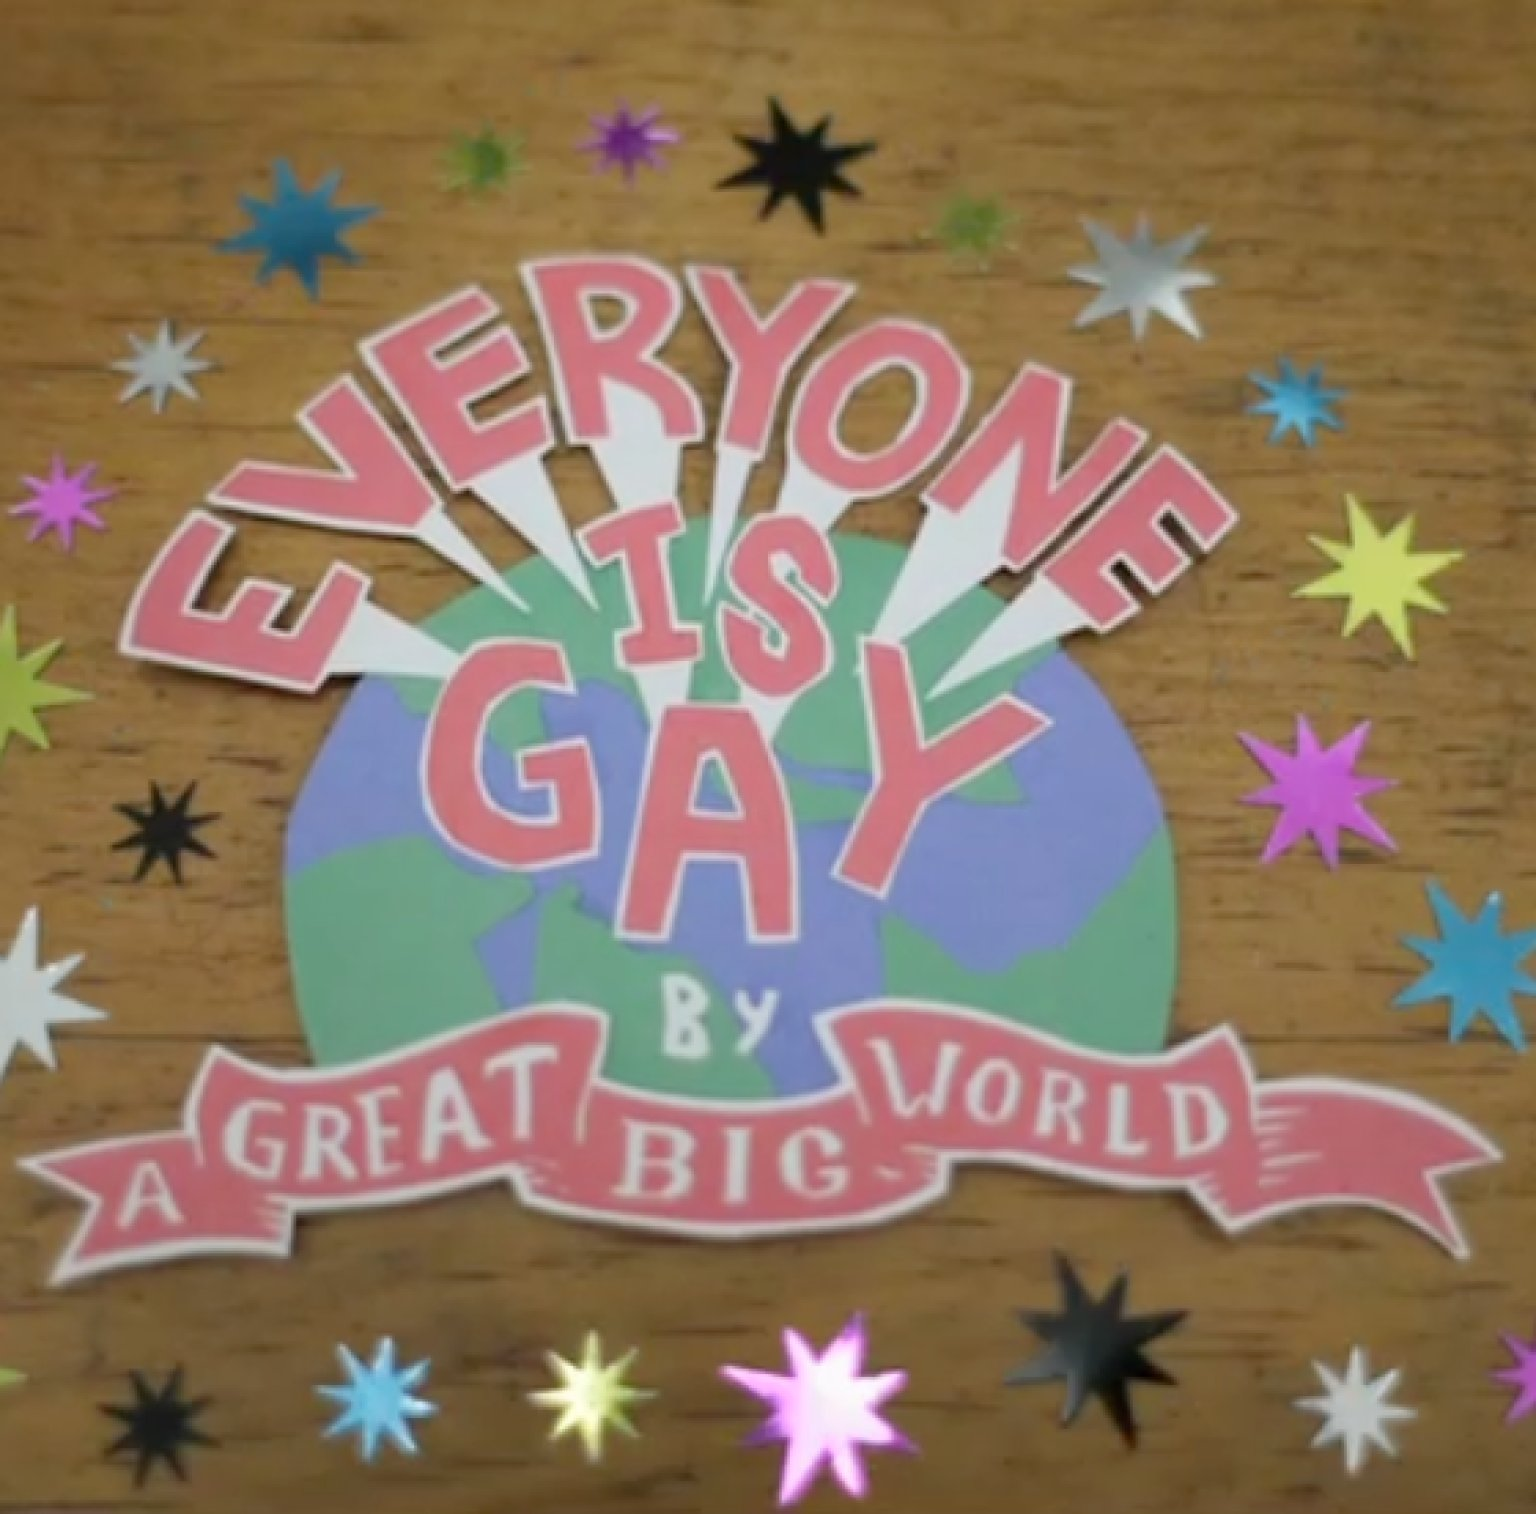 Is a great big world gay